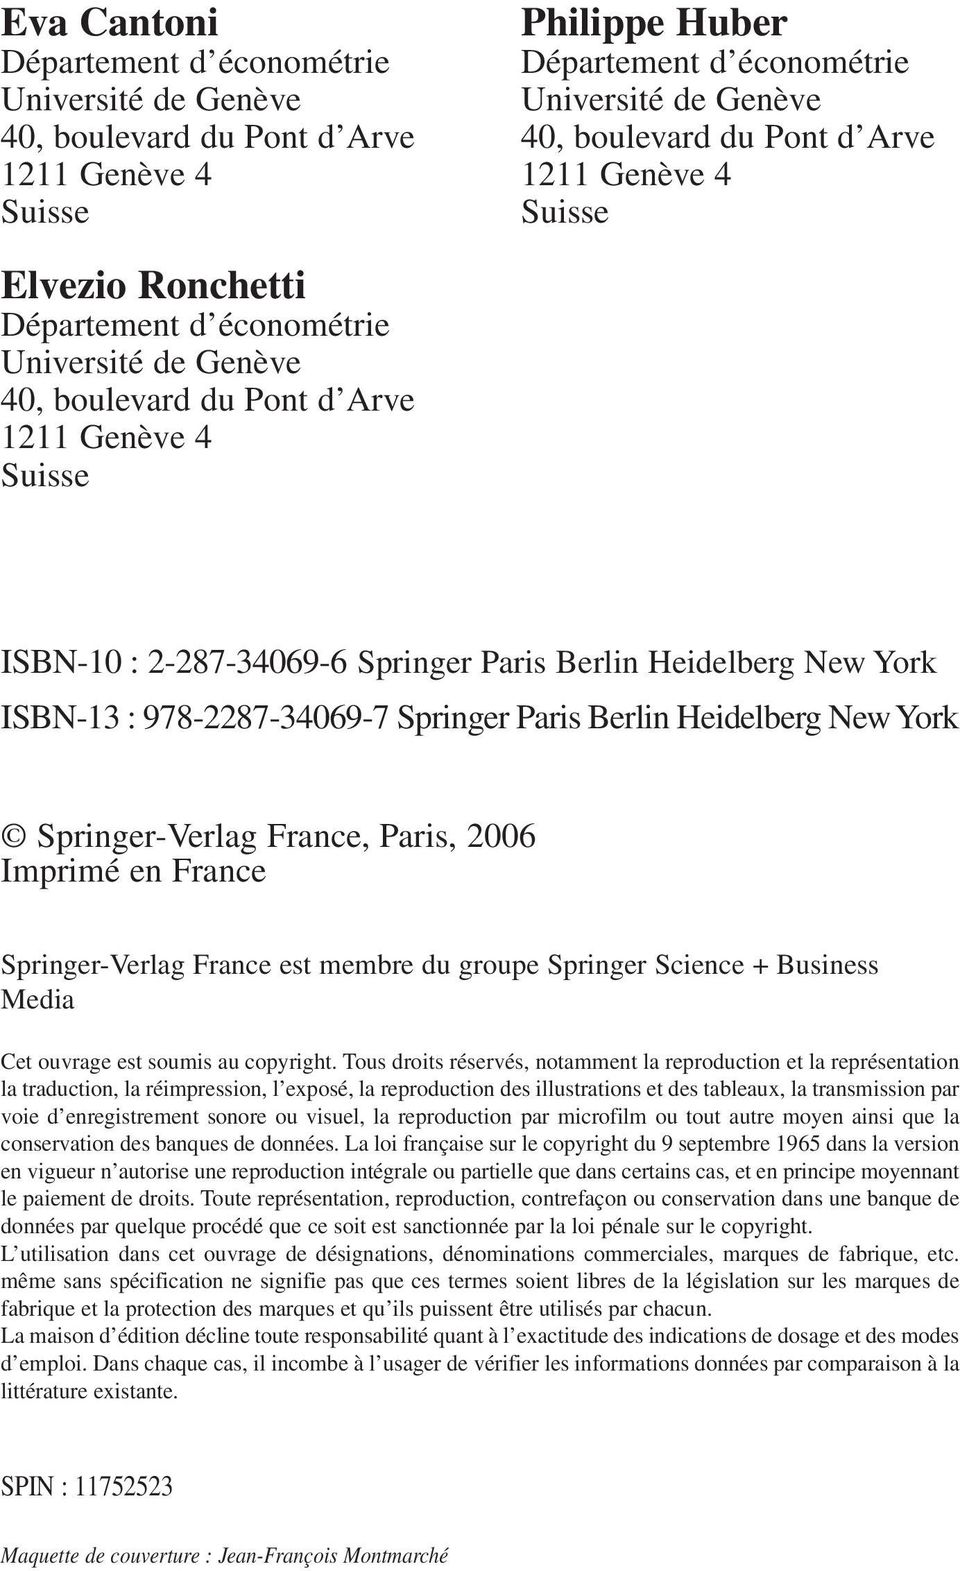 978-2287-34069-7 Springer Paris Berlin Heidelberg New York Springer-Verlag France, Paris, 2006 Imprimé en France Springer-Verlag France est membre du groupe Springer Science + Business Media Cet